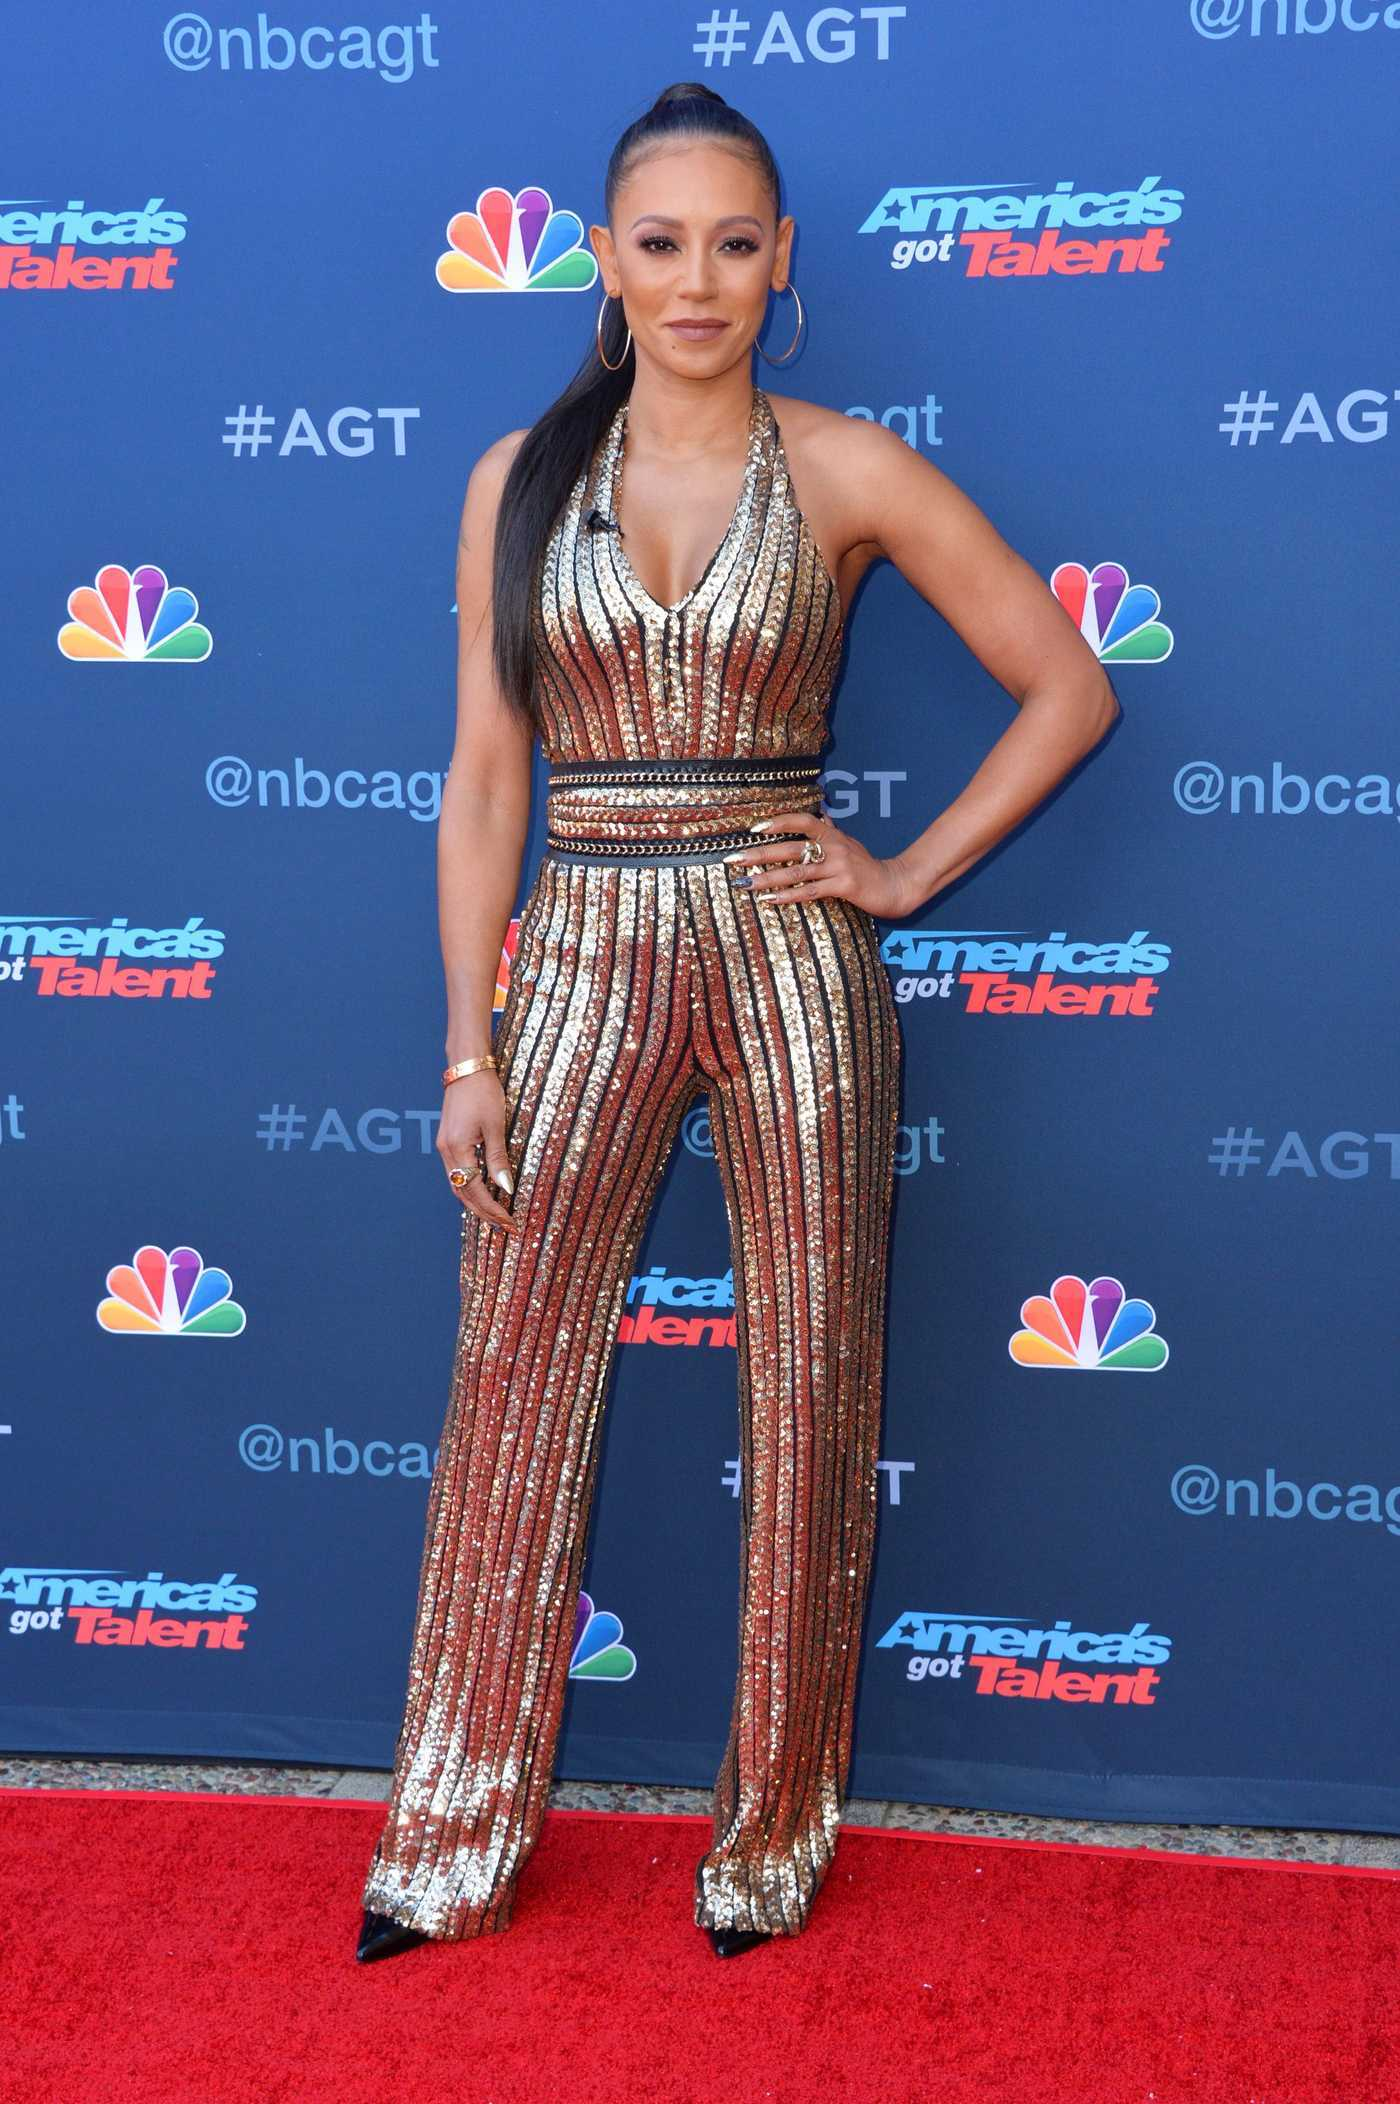 Melanie Brown at America's Got Talent Season 12 Kick off Event in Los Angeles 03/27/2017